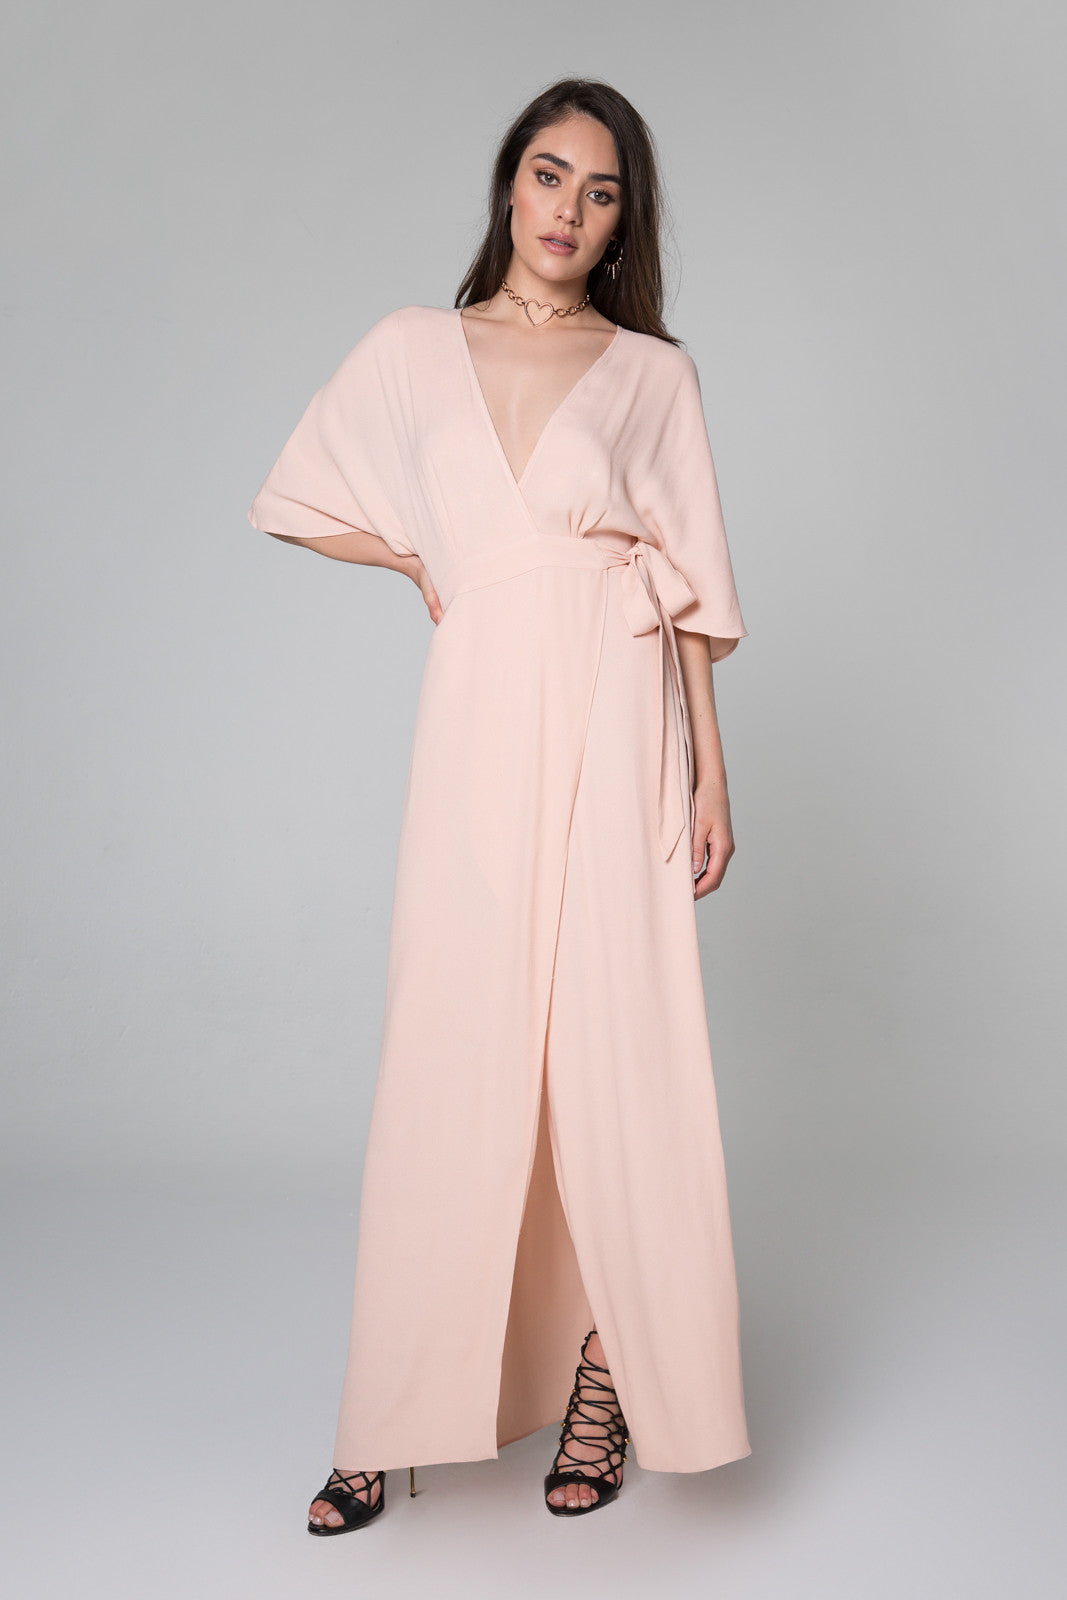 Monroe Komono Wrap Maxi Dress